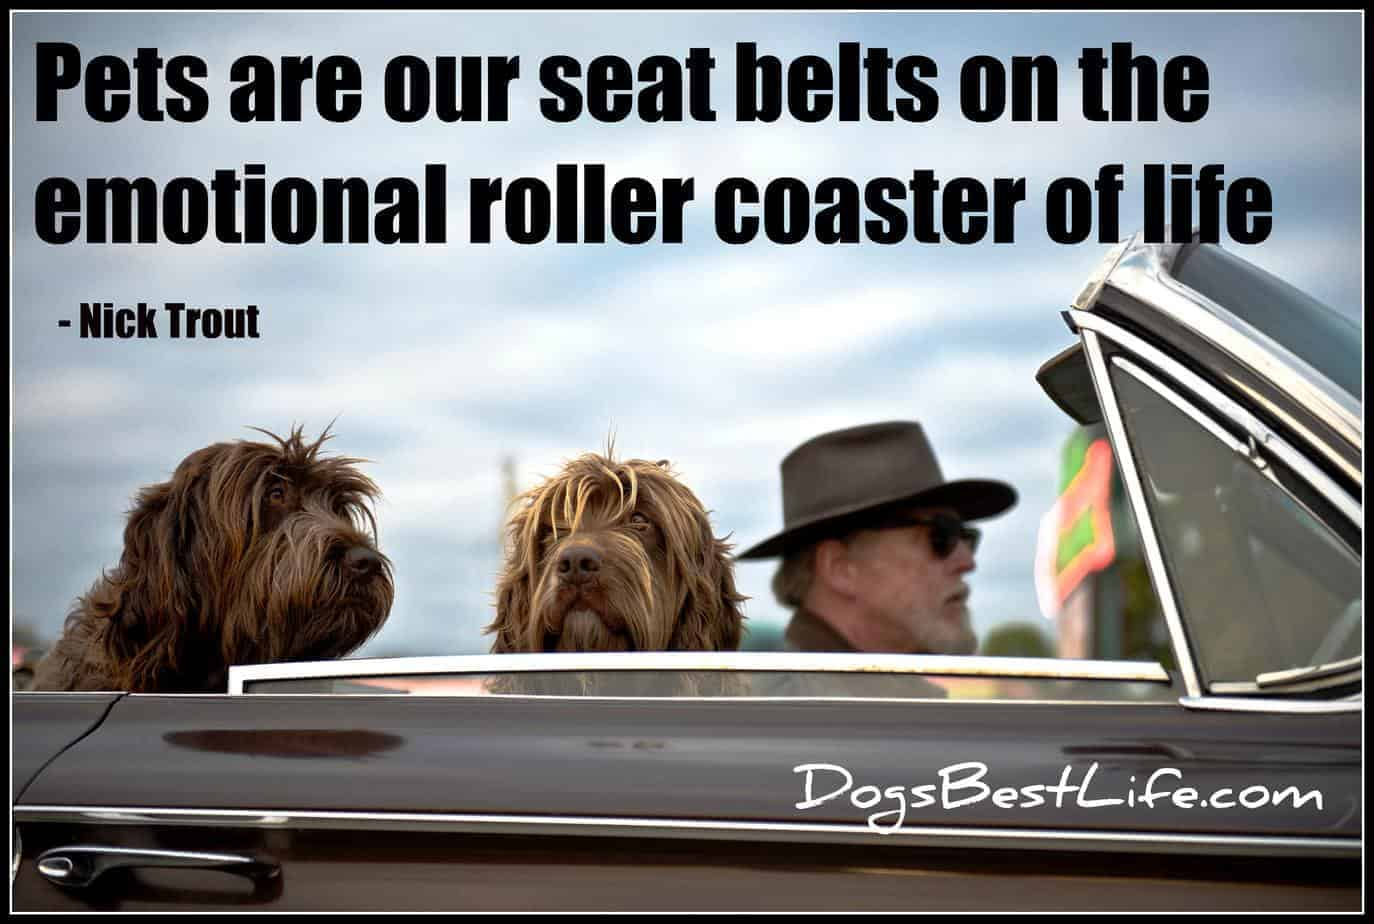 Pets are our seatbelts on the roller coaster of life